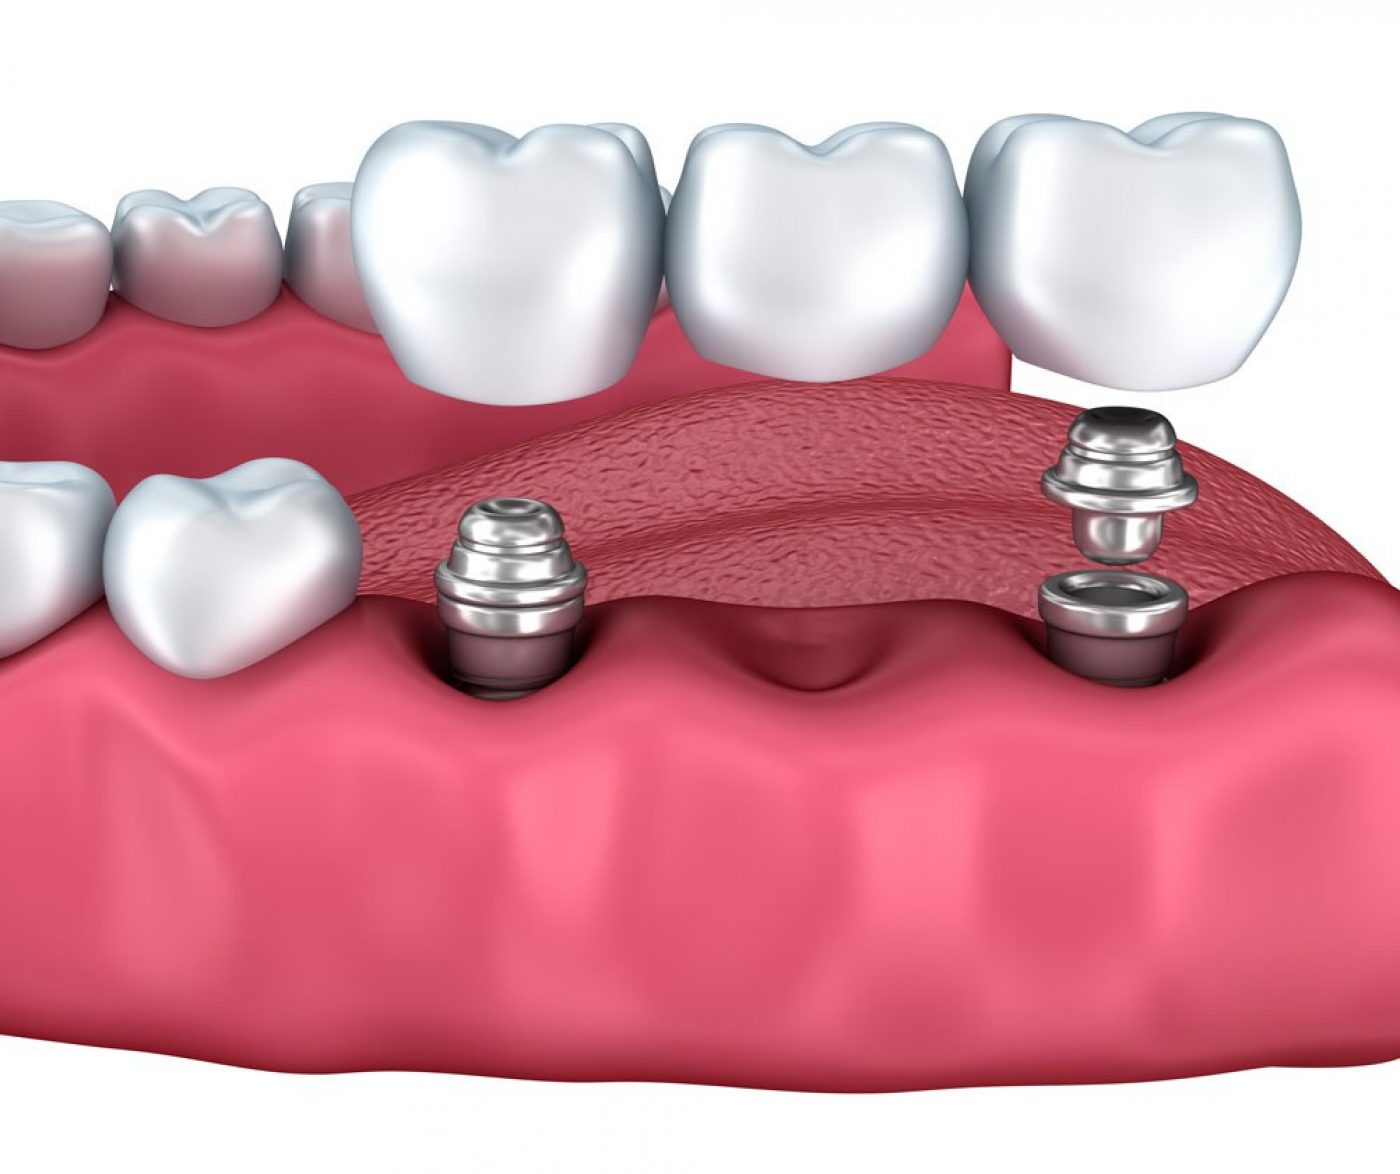 Hdic Dental Implants Multiple